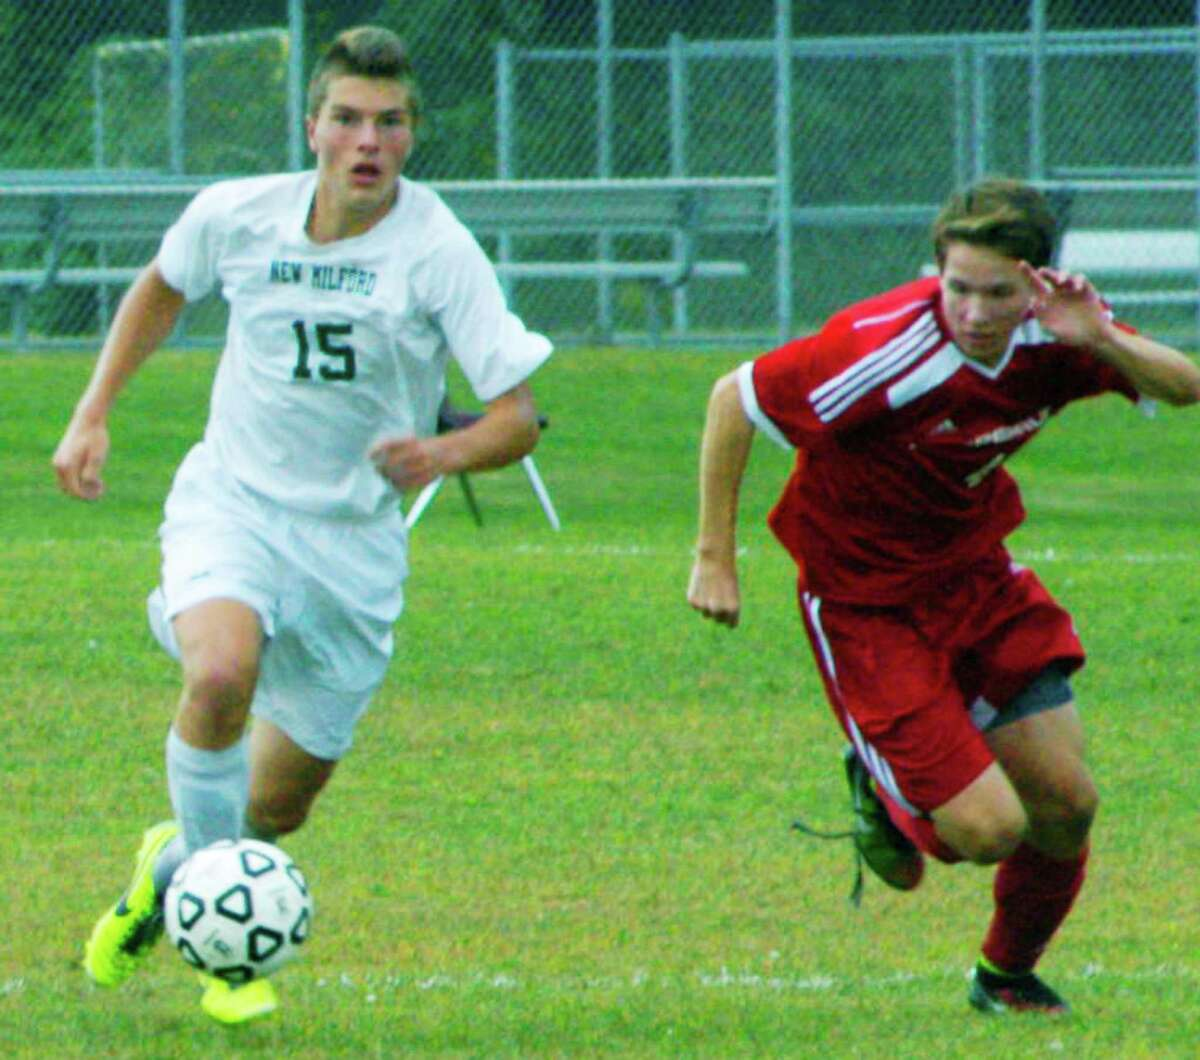 Spencer Ranno of the Green Wave kicks it into a higher gear during New Milford High School boys' soccer's 2-1 victory over Pomperaug, Sept. 20, 2014 at NMHS.